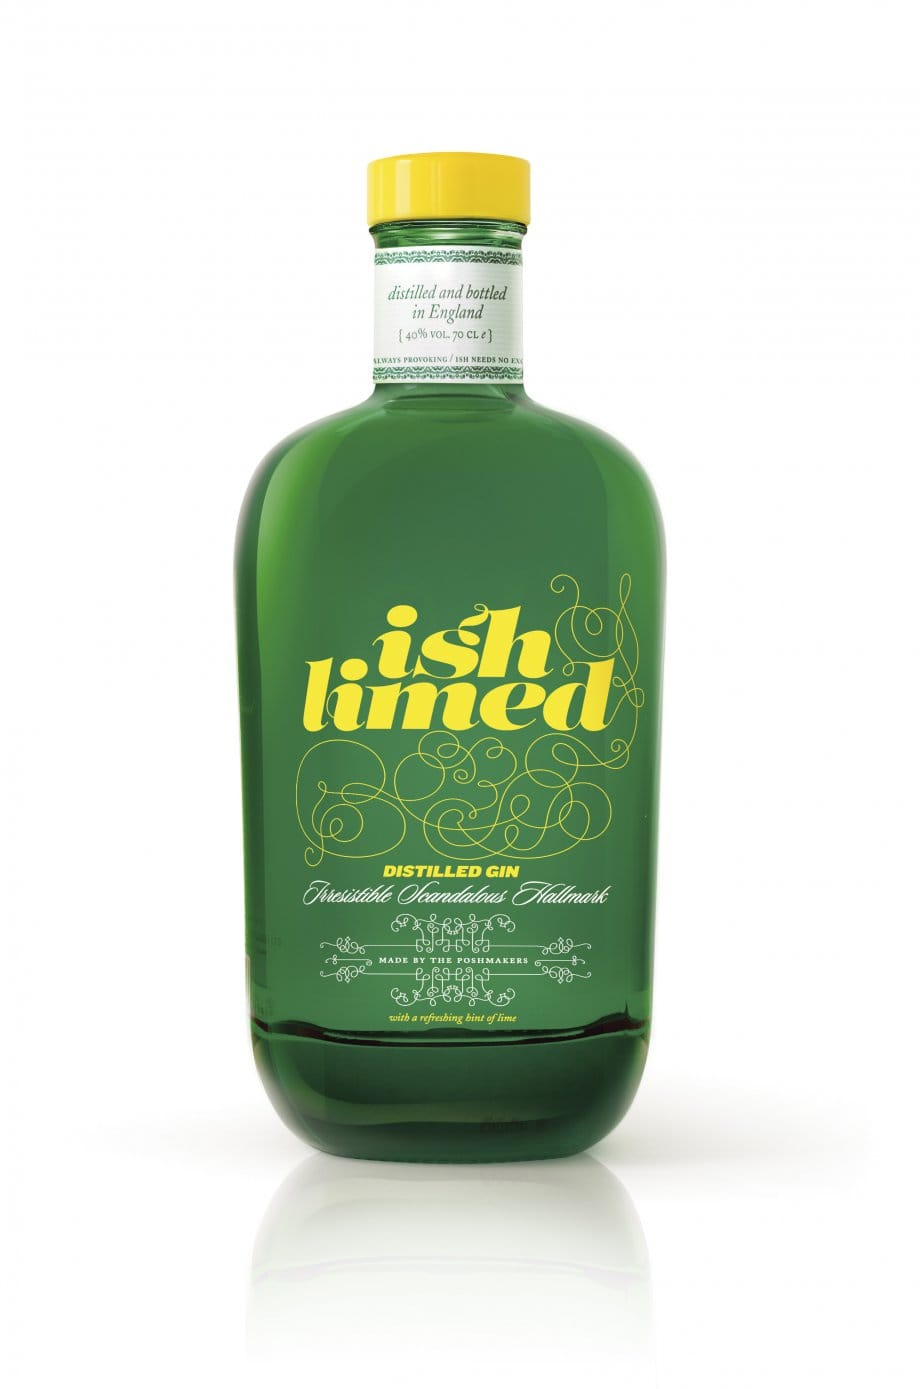 Gin-ish-limed